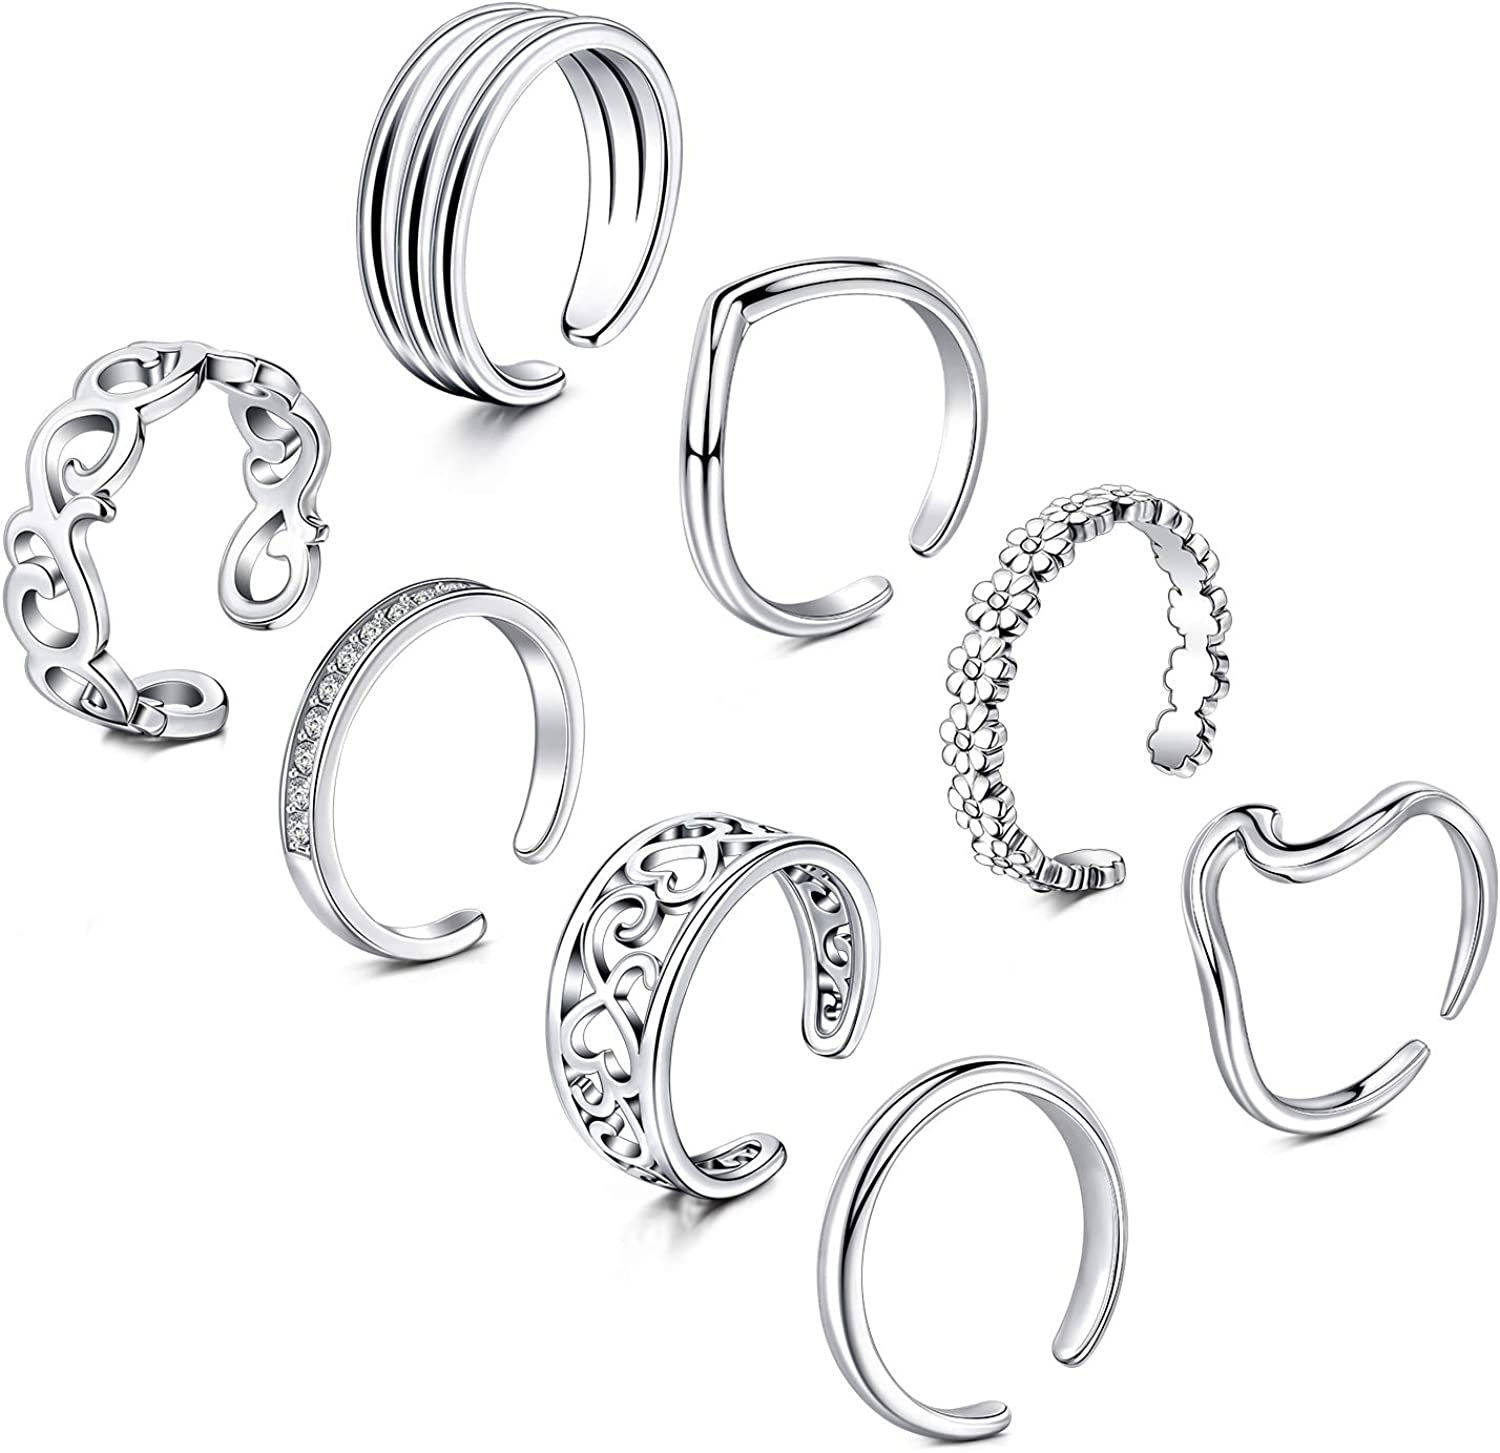 Briana Williams Adjustable Toe Rings for Women Summer Beach Hypoallergenic Open Toe Ring Set Finger Tail Rings Foot Jewelry